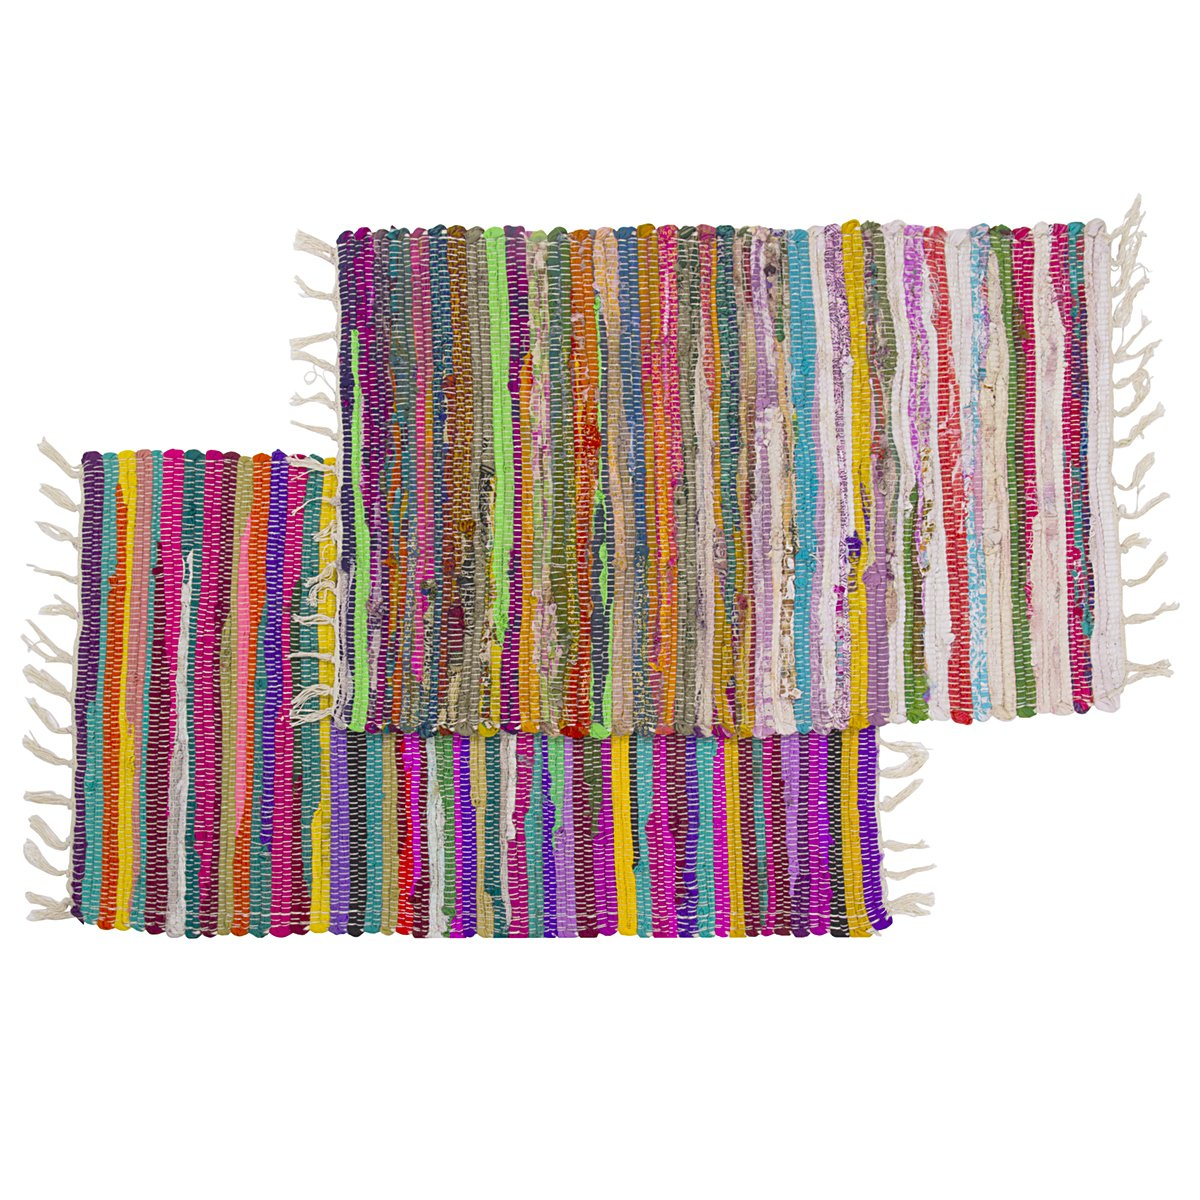 2 Chindi Rag Rugs 20x30 Multi Colored Recycled Cotton Woven Entry Way Bath DG Home Goods